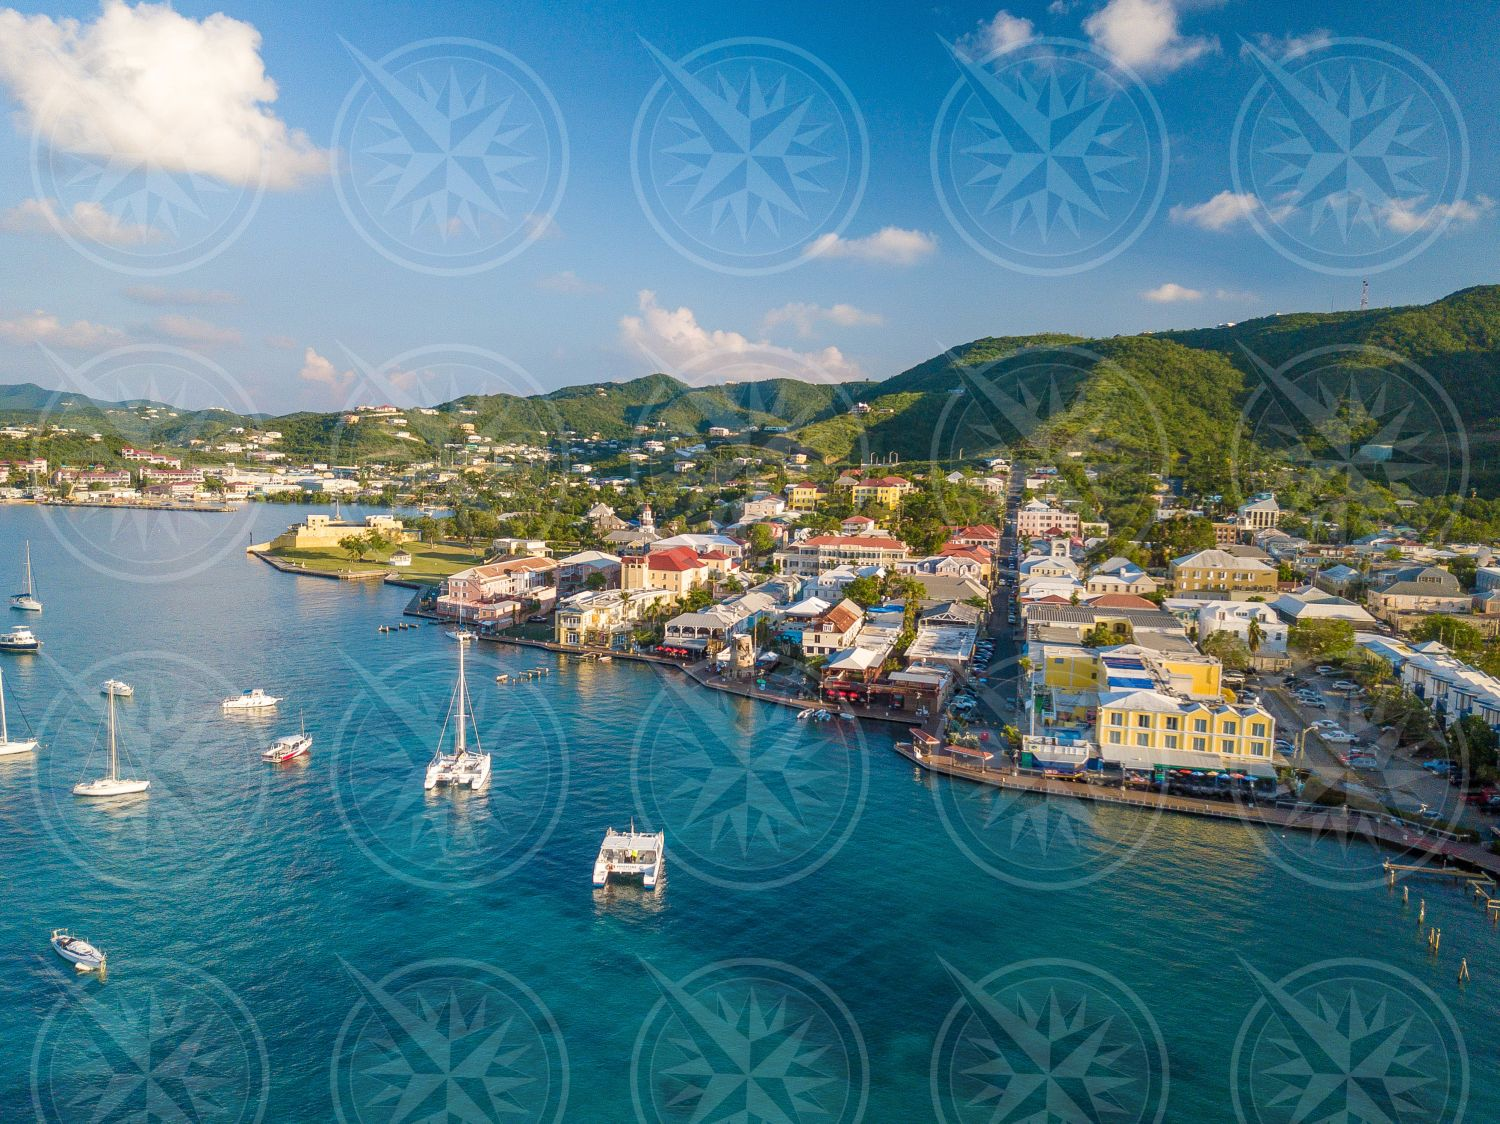 Downtown Christiansted from the air